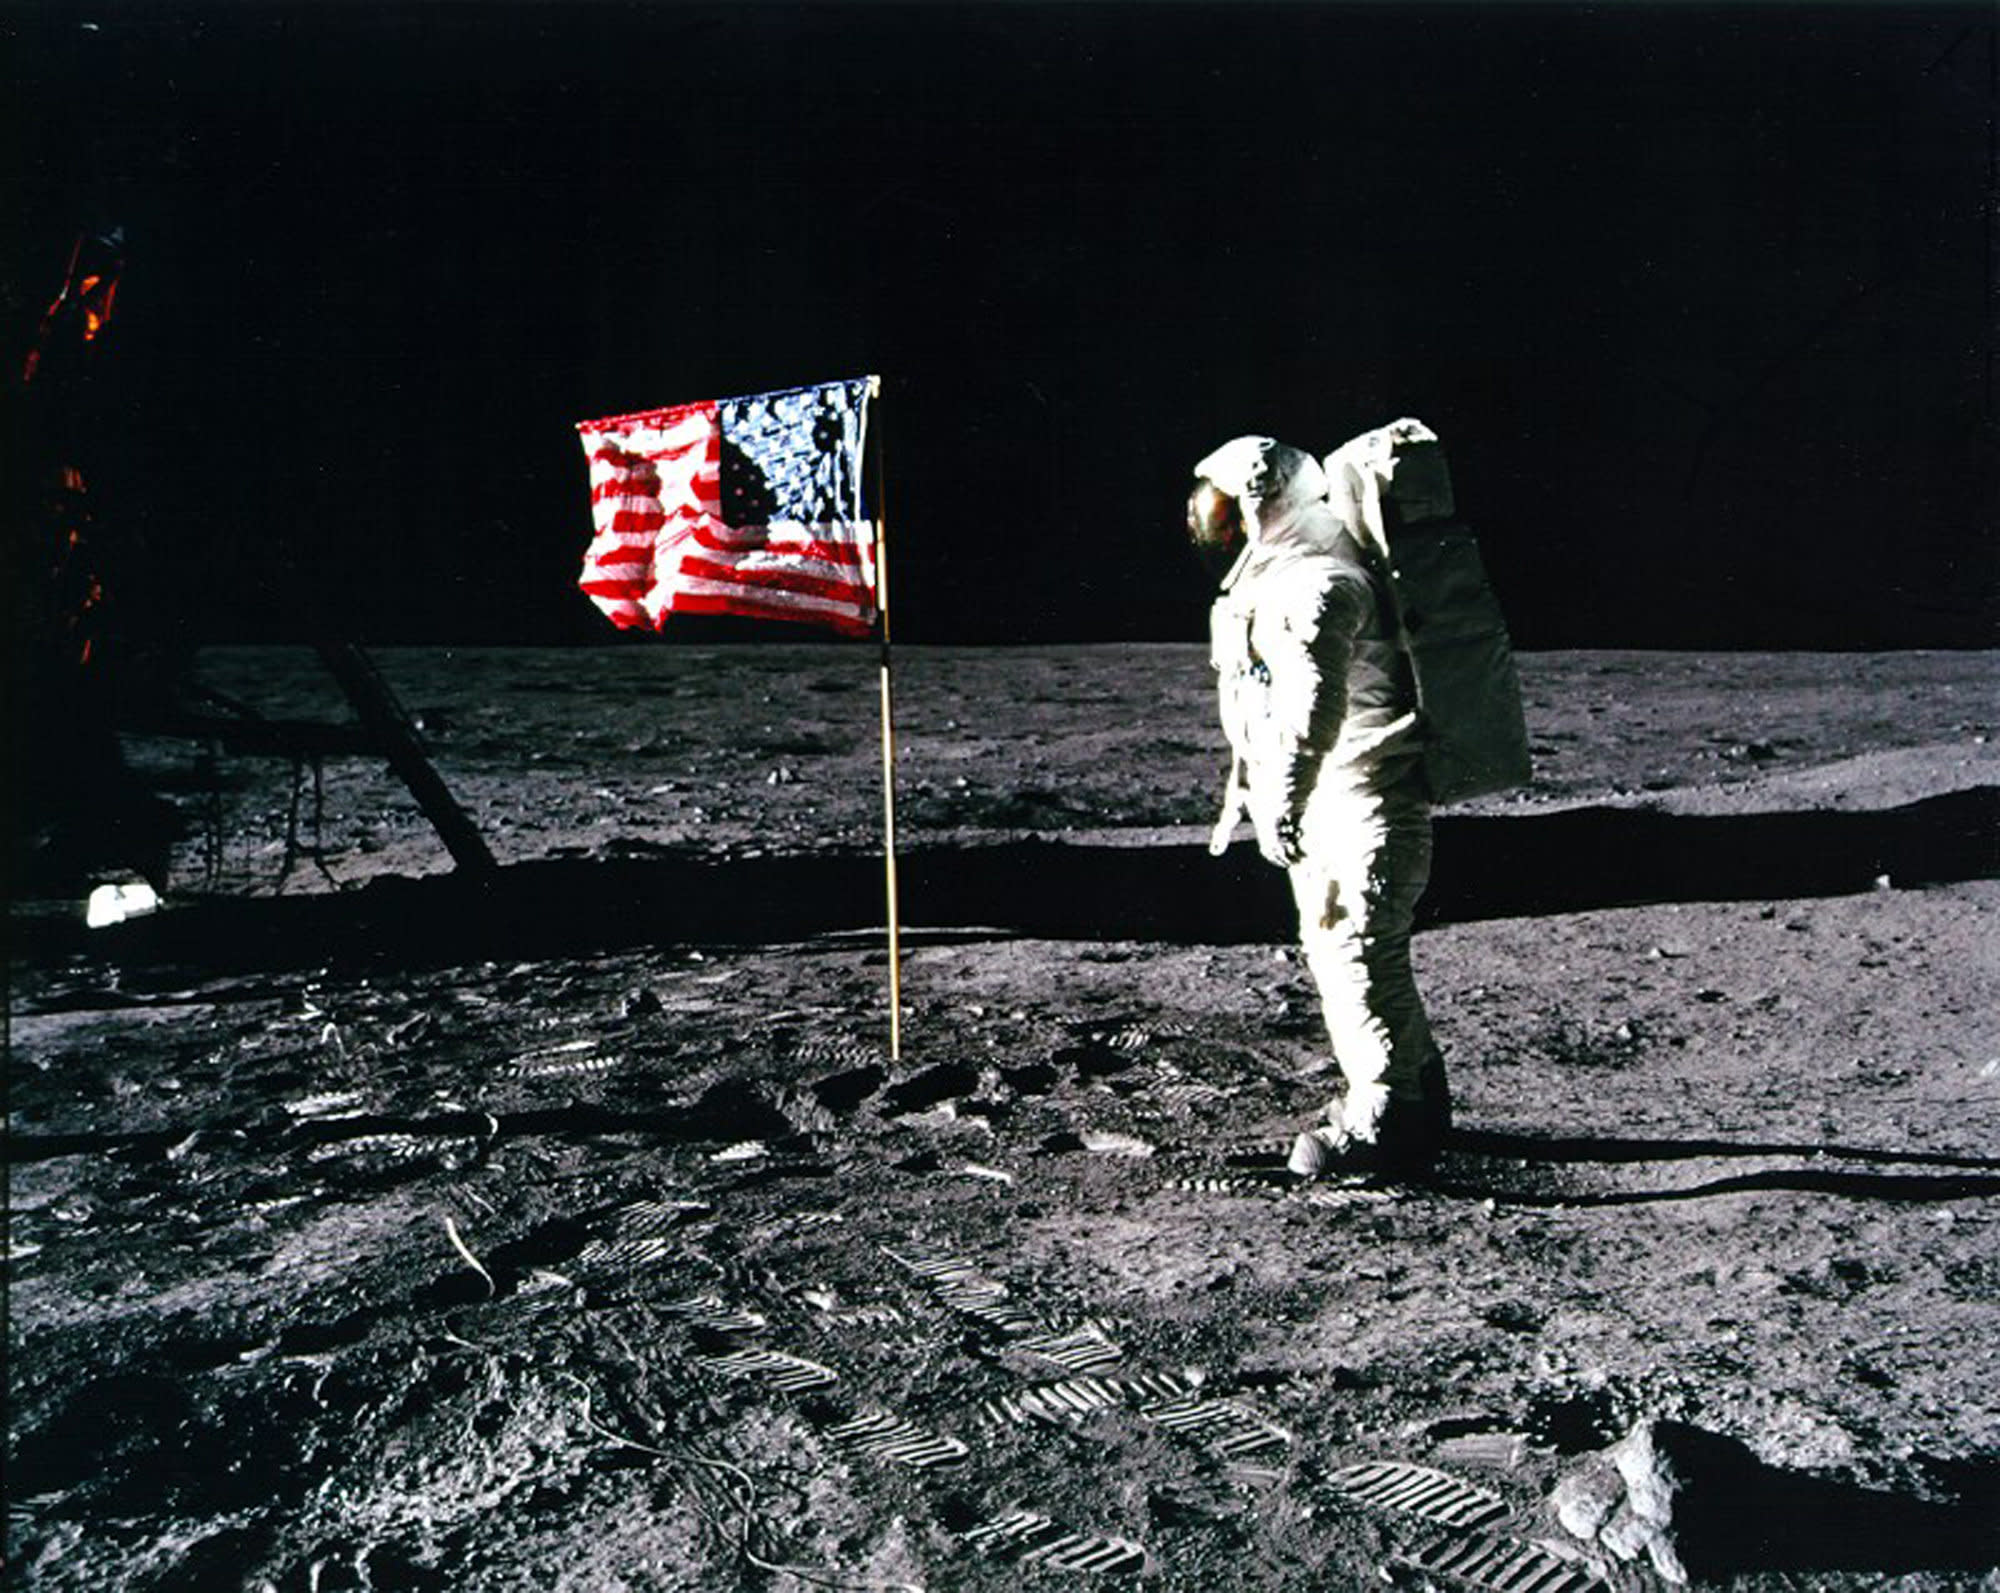 $995 Bag Of Moon Dust Could Fetch $4 Million At Auction